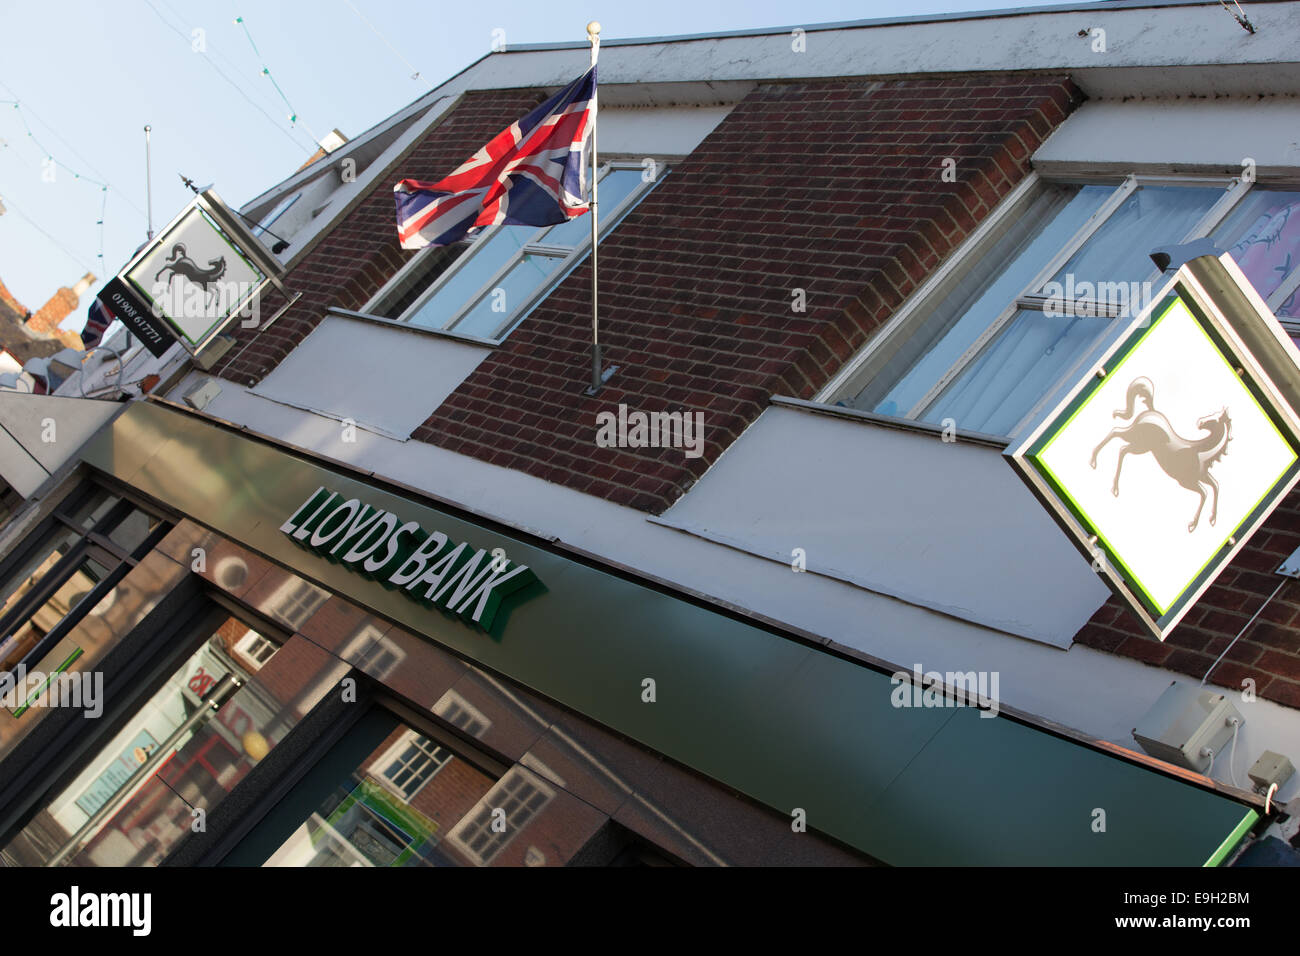 Newport Pagnell, Buckinghamshire, UK. 28th October, 2014. Lloyds Bank confirms 9,000 job losses and the closure Stock Photo